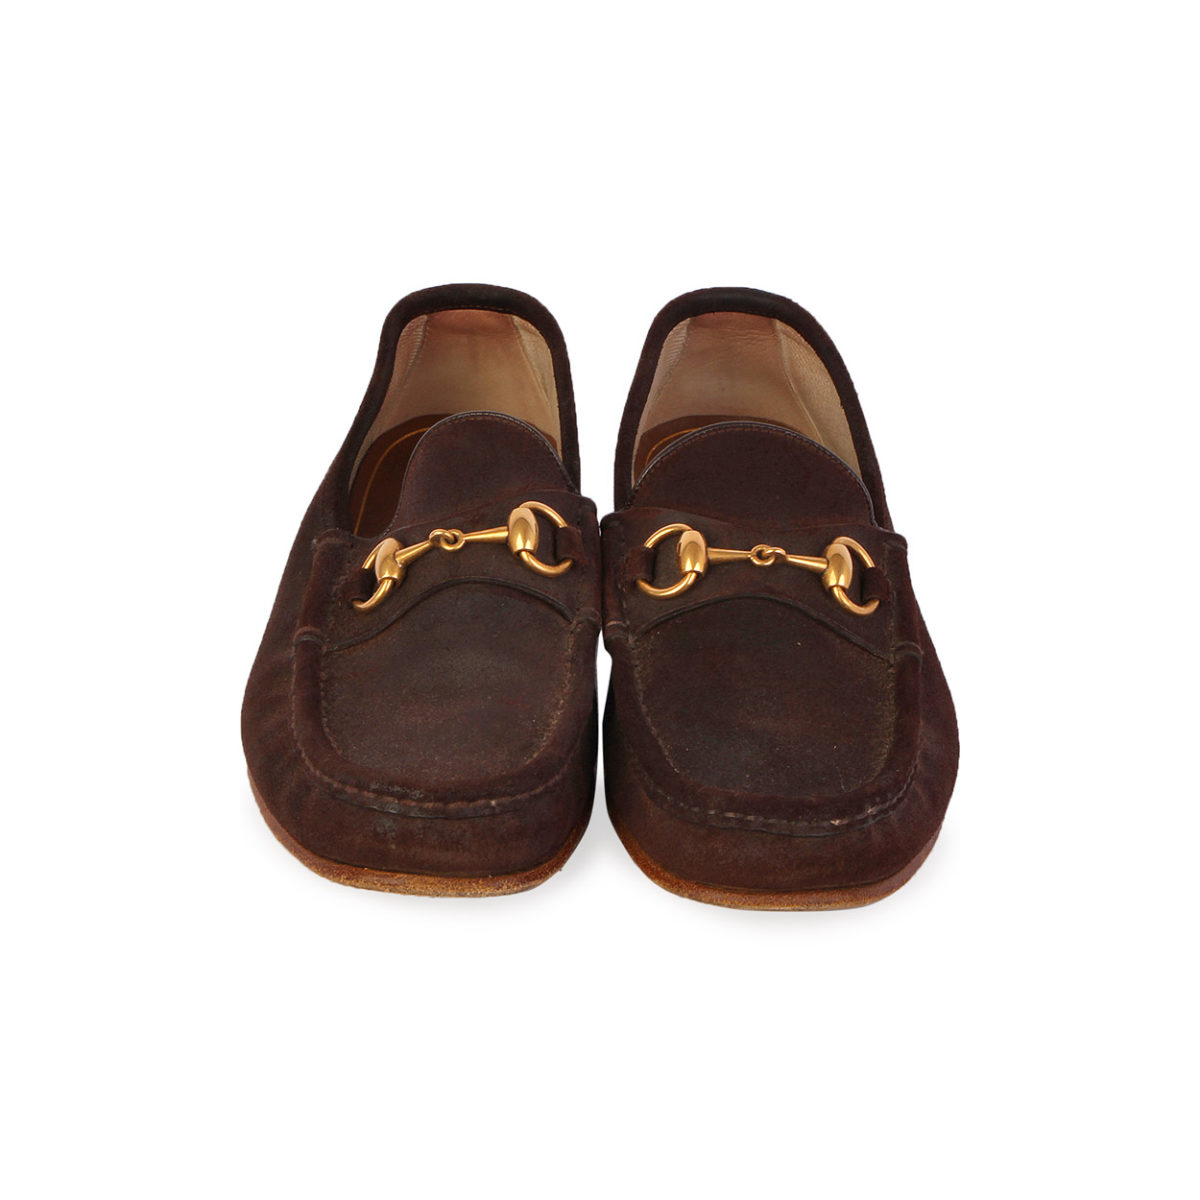 d2a836150e05c8 GUCCI Vintage Horsebit Suede Loafers Dark Brown - S  40 (6.5)